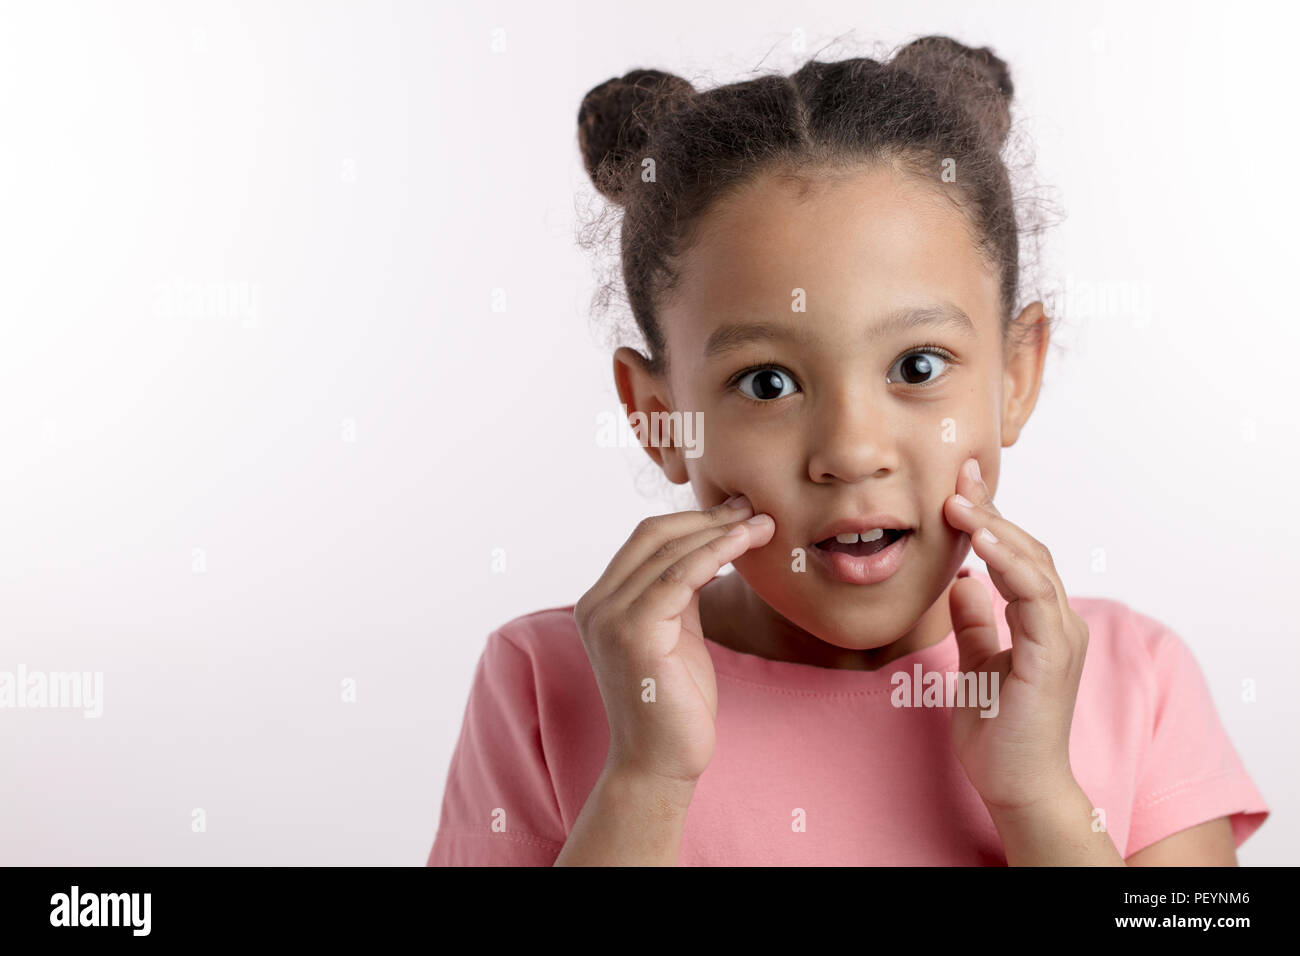 surprised little dark-haired girl with new hairstyle. amazemen concept. cheerful emotional mulatto kid with fingers on her cheeks. copy space. isolate - Stock Image